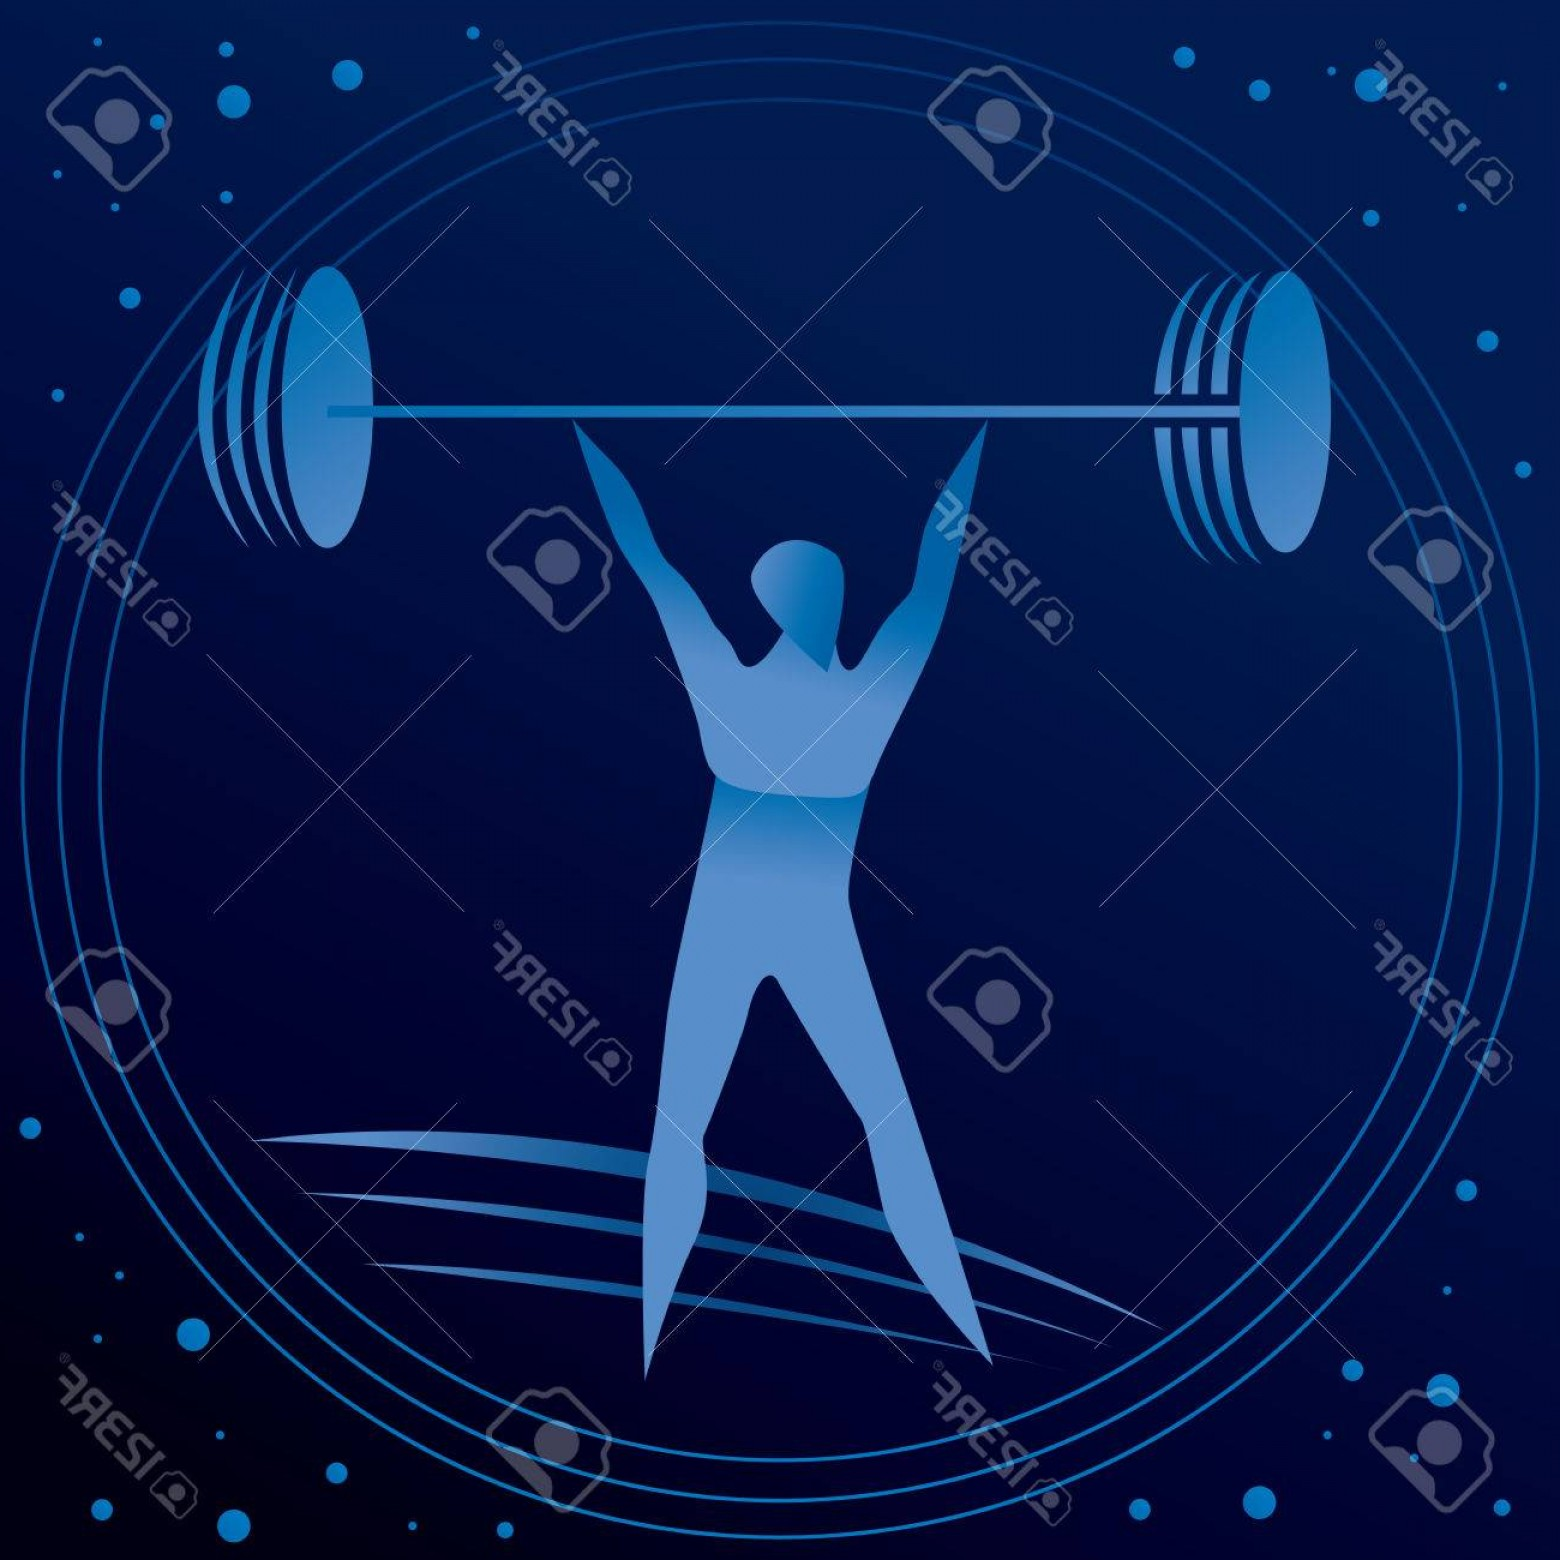 Weight Lifting Vector Graphics: Photostock Vector Weight Lifting Graphics Man Sport Vector Art